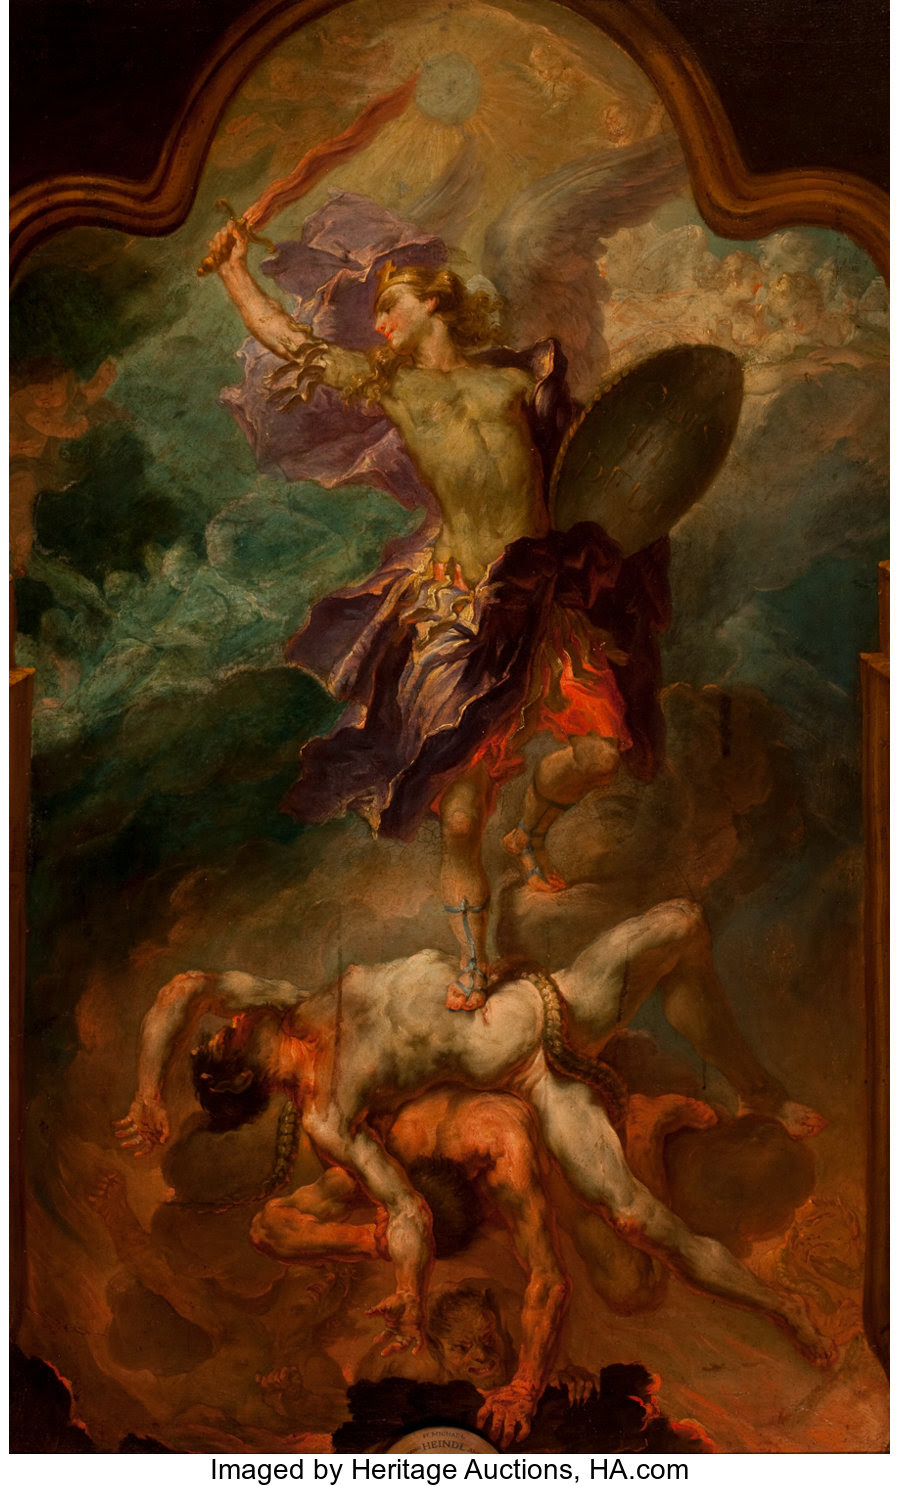 Fine Art - Painting, European, Circle of WOLFGANG ANDREAS HEINDL (Austrian, 1693-1757). SaintMichael. Oil on canvas. 51 x 32 inches (129.5 x 81.3 cm)... Image #1